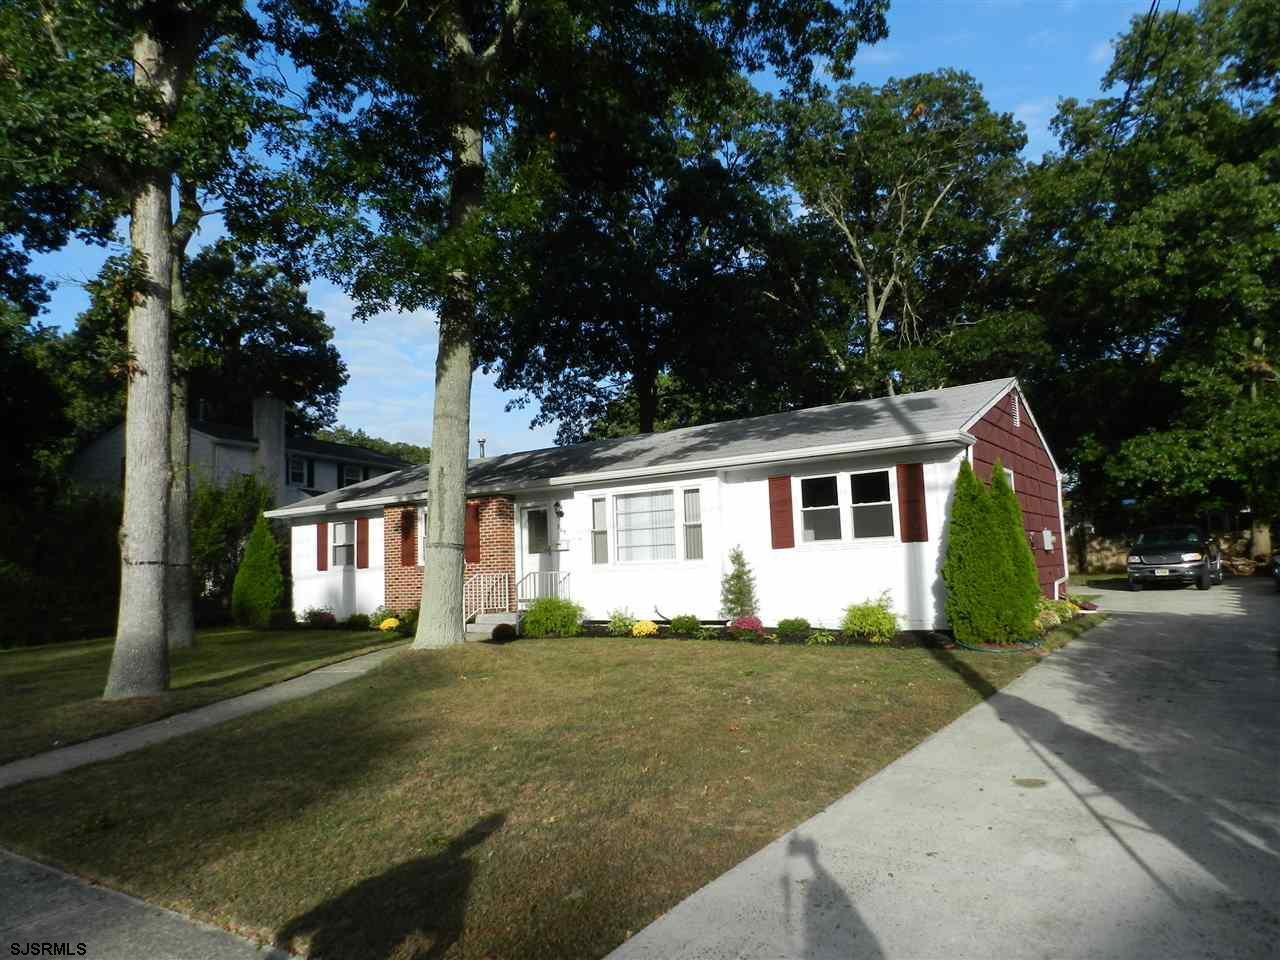 205 Woodcrest Ave, Absecon, NJ